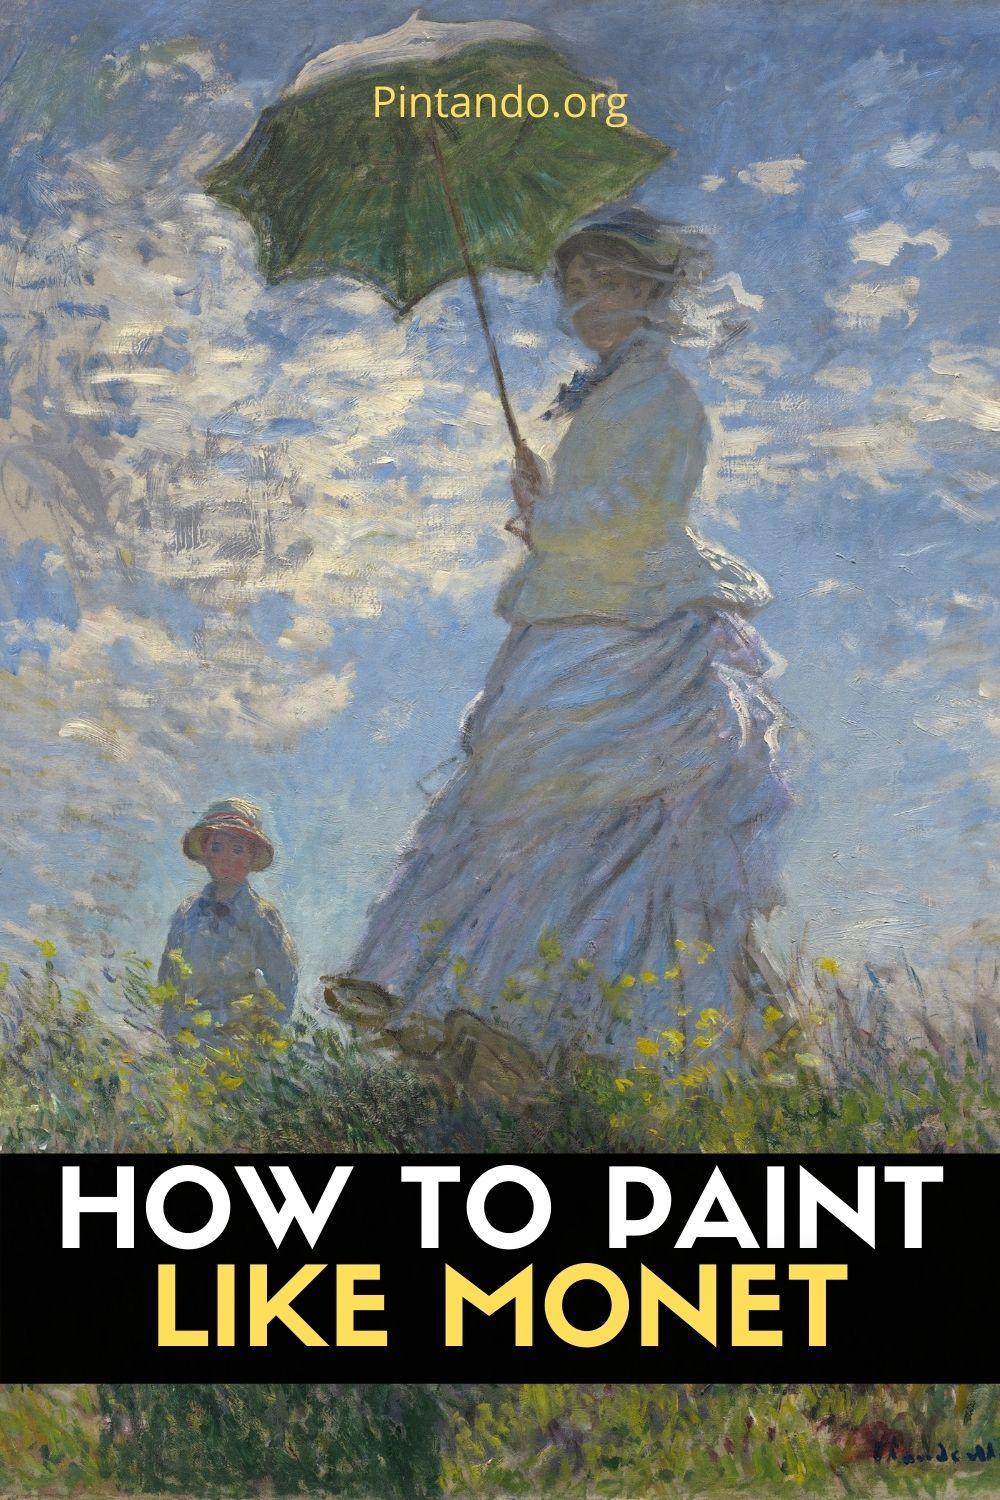 HOW TO PAINT LIKE MONET (3)